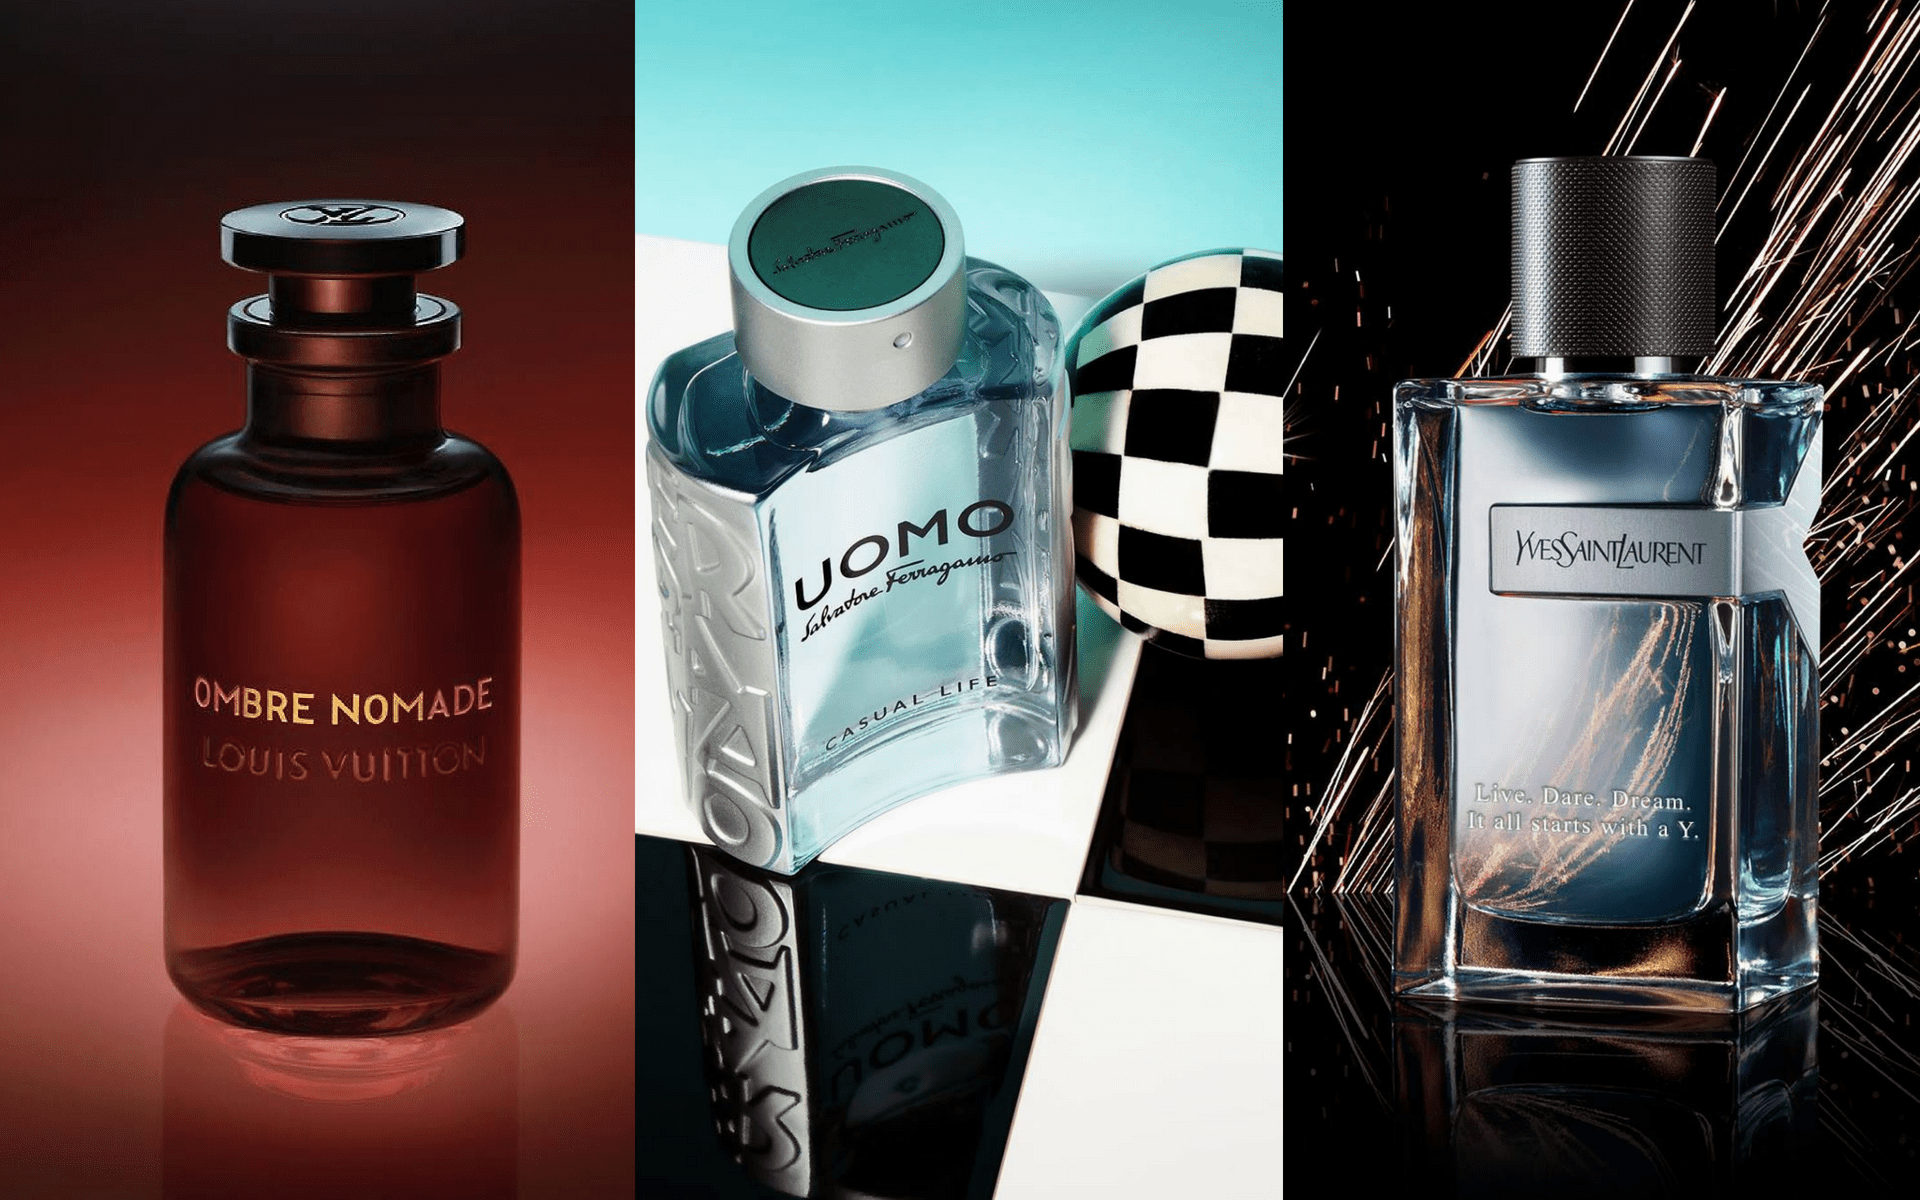 f0f8e71eff 9 Luxurious Men's Fragrances To Turn Up The Charm | Malaysia Tatler